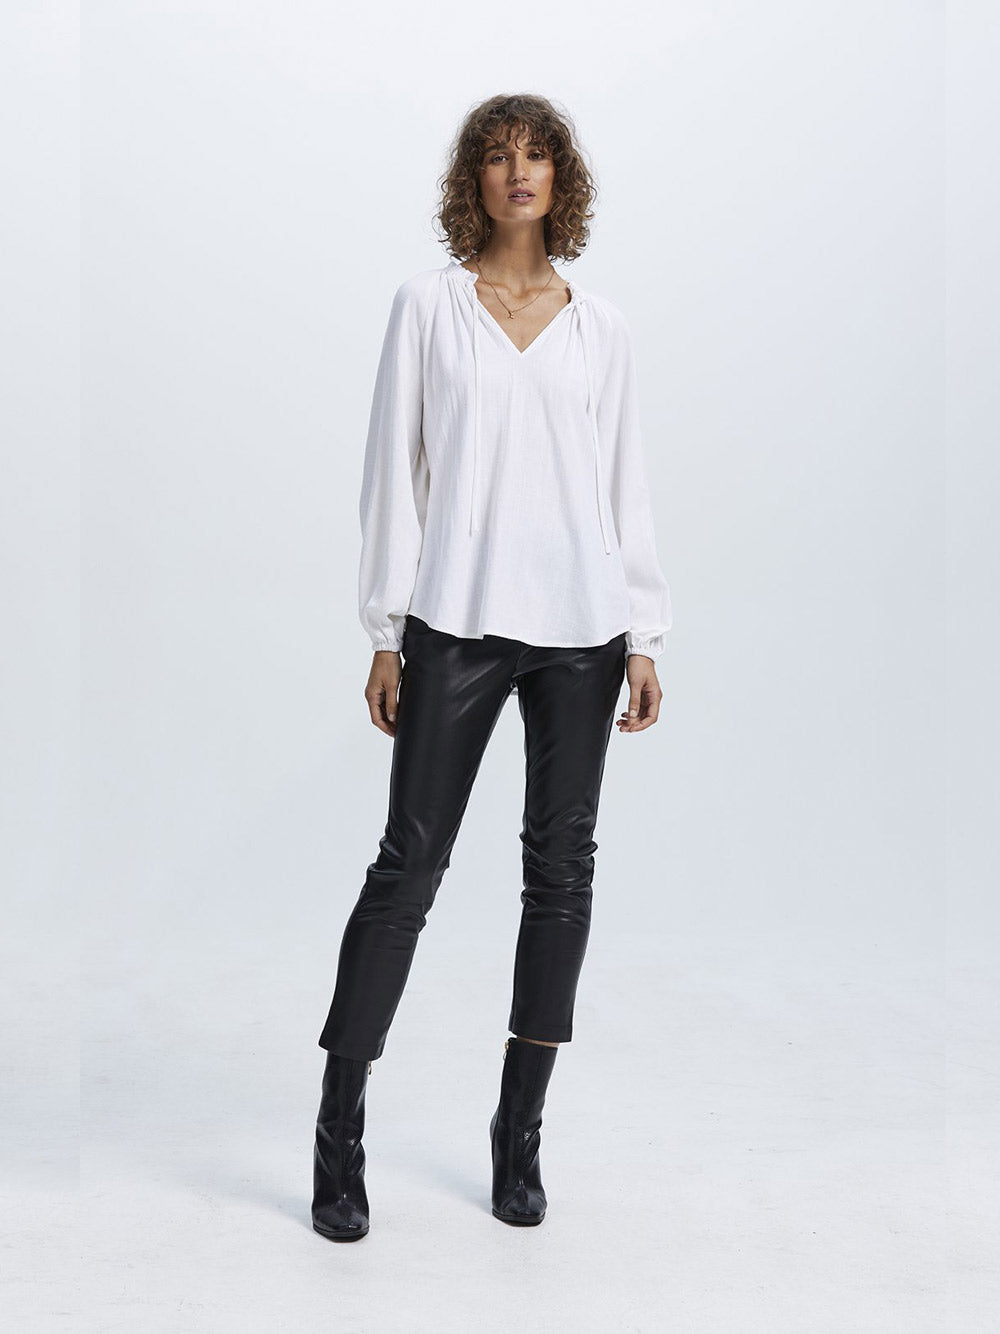 STAPLE THE LABEL Eternity Smock Blouse